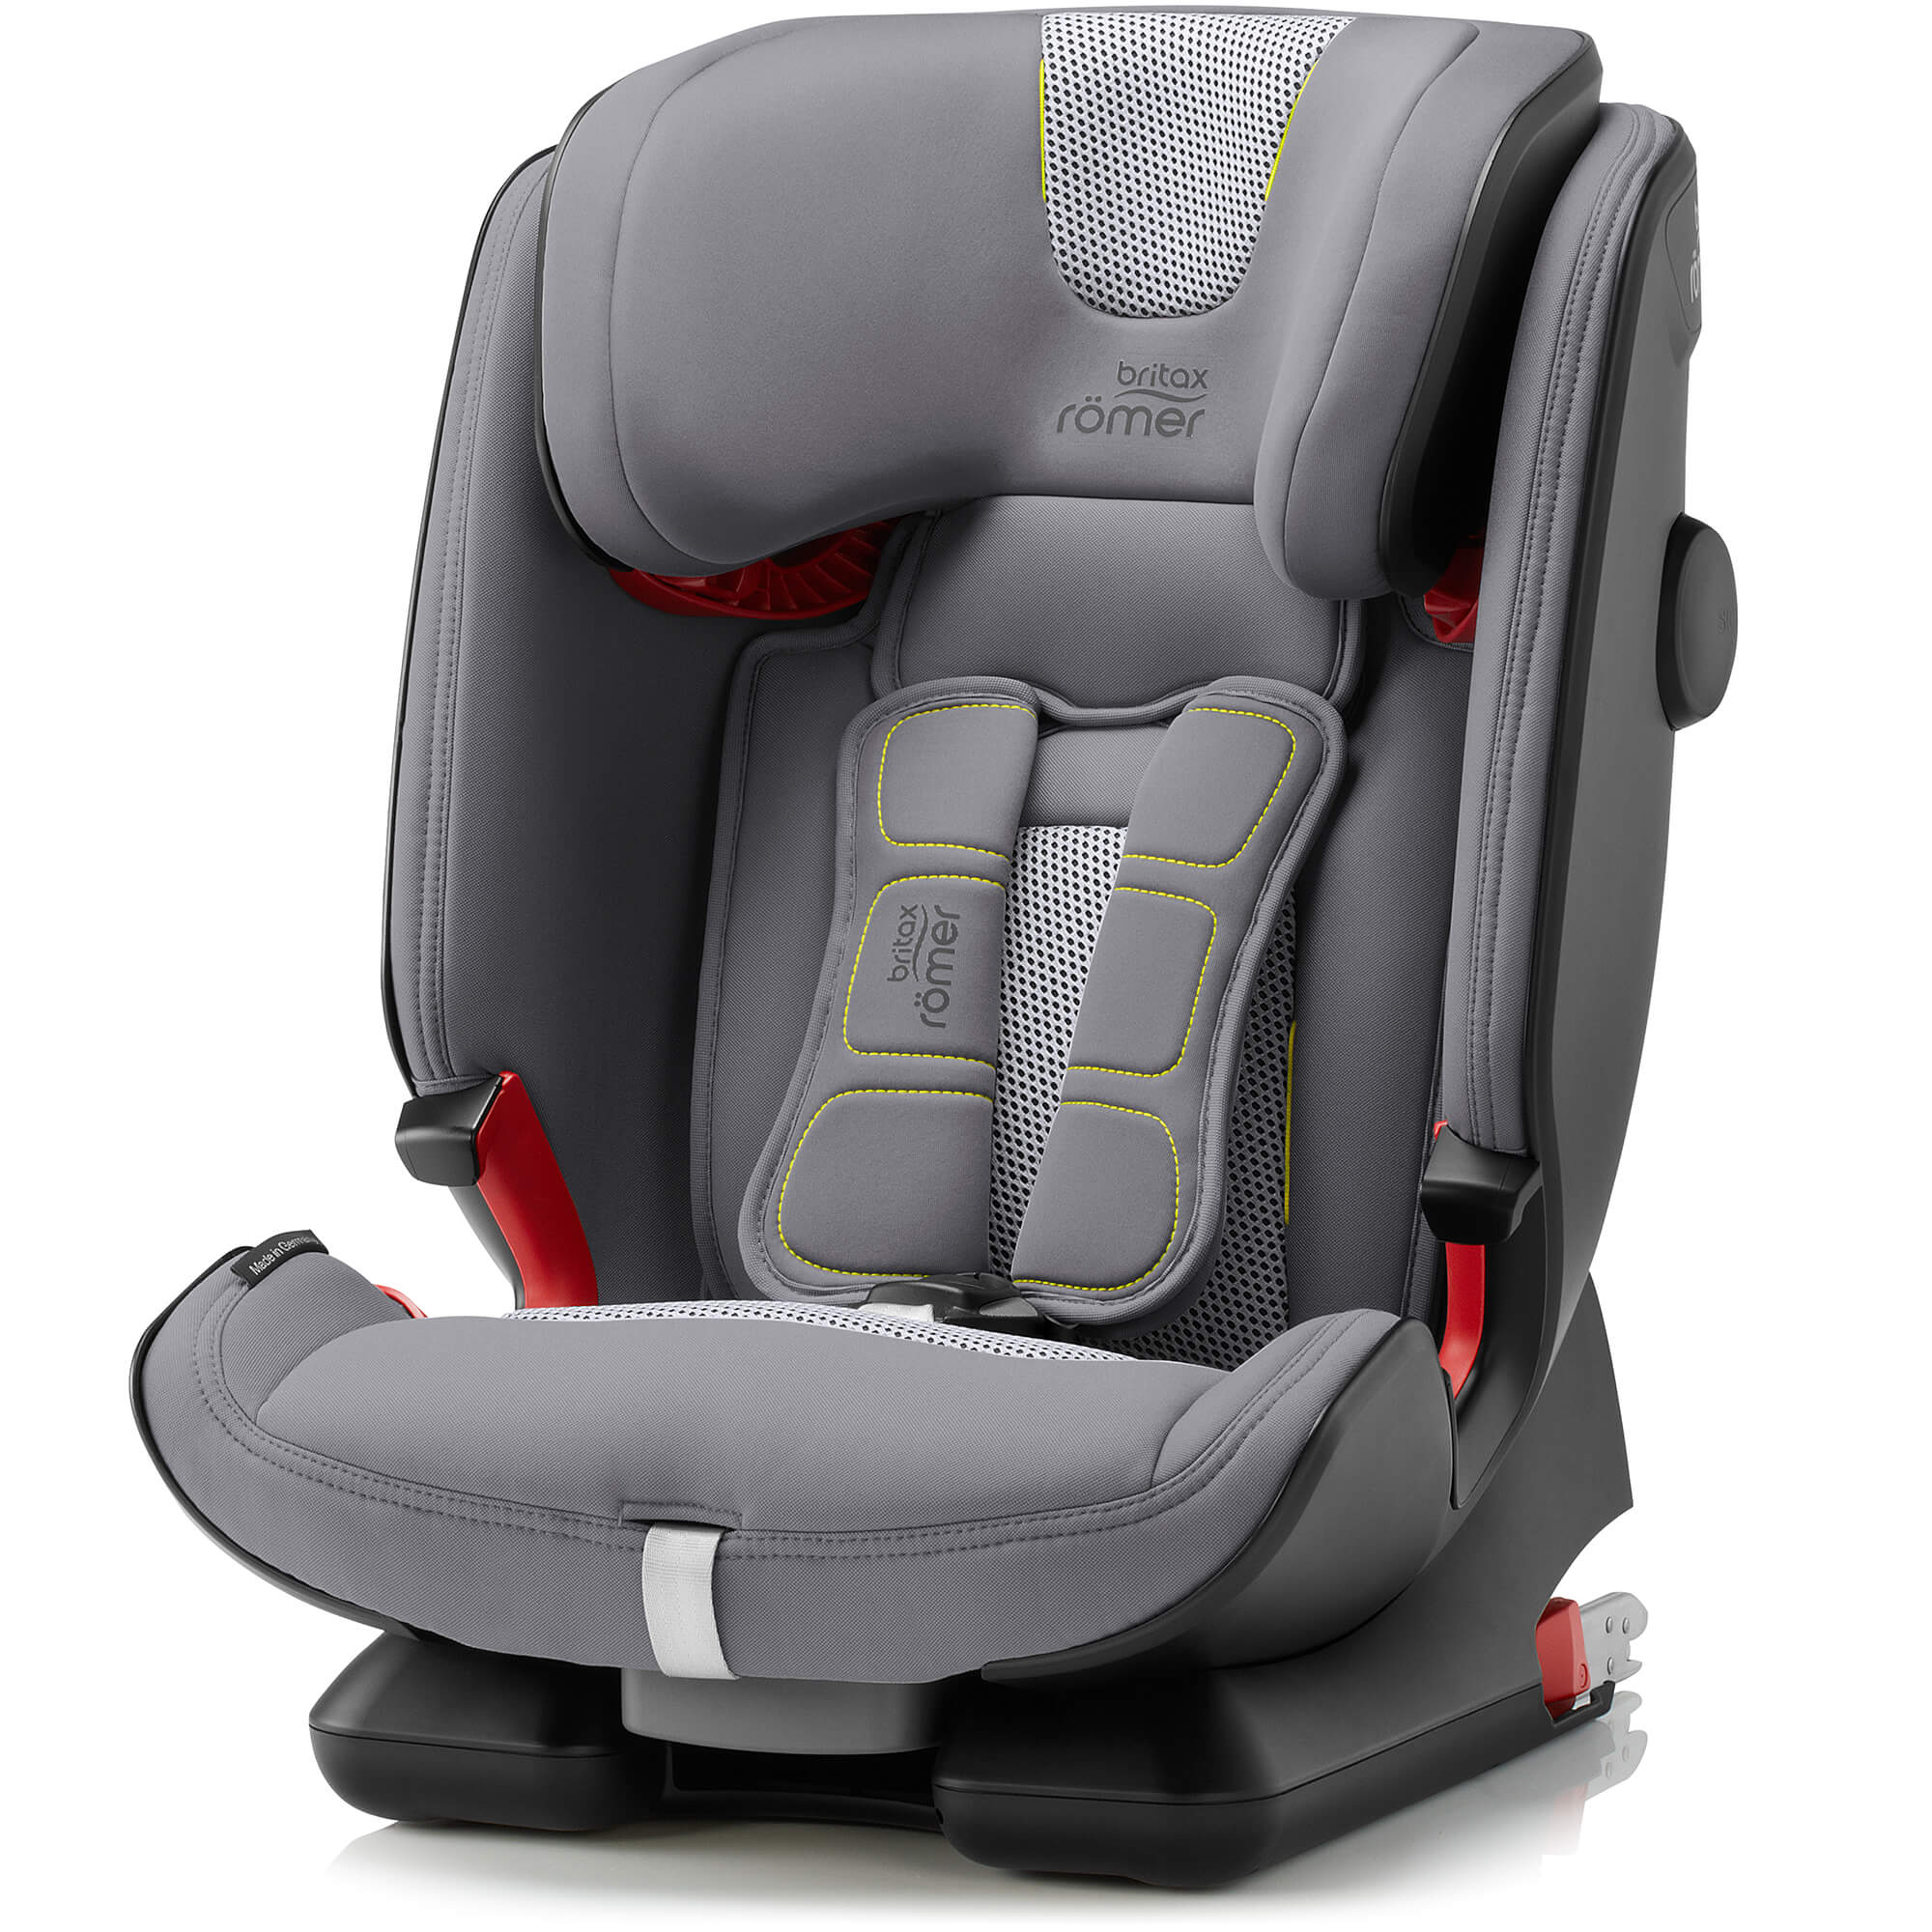 952459f61df Tap to expand · Britax Römer Advansafix IV R - Air Silver - child seat  group 1-2- Britax Römer Advansafix ...